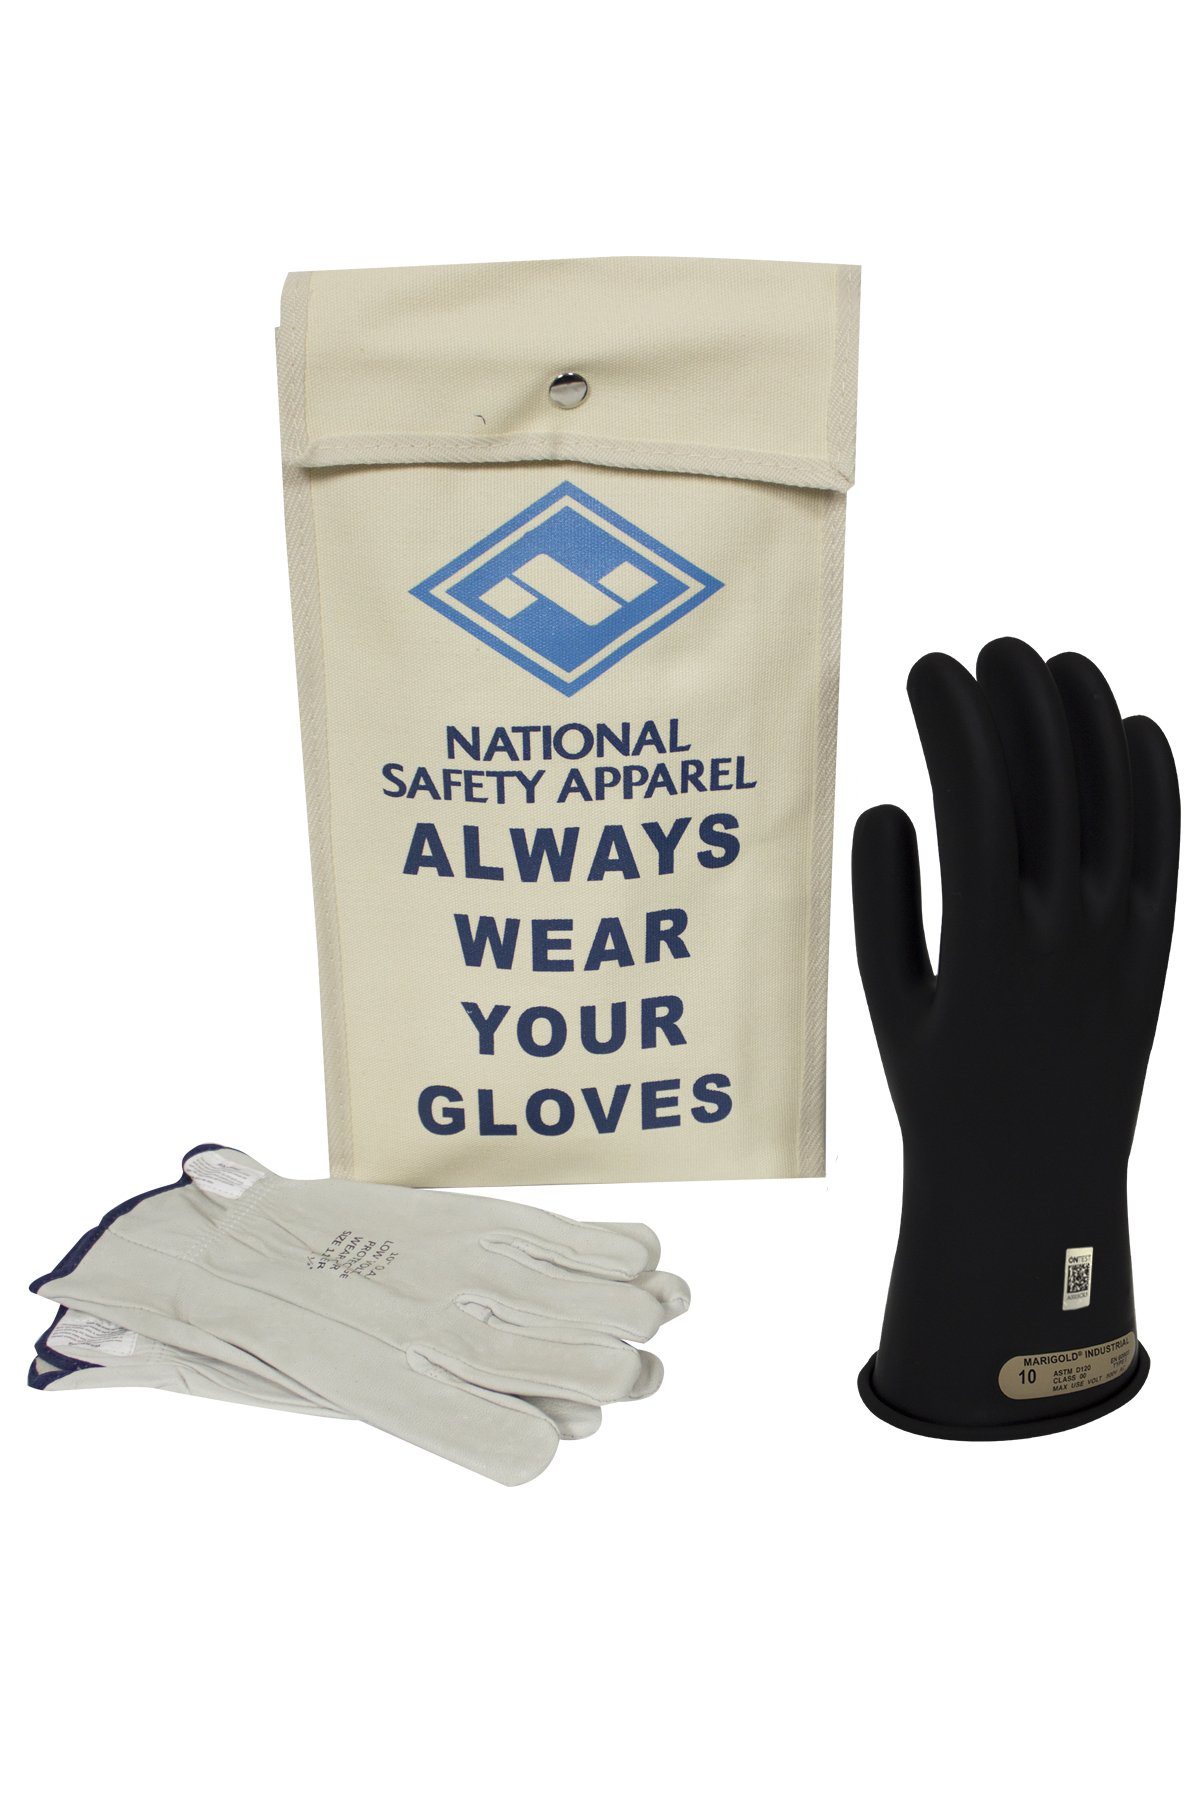 National Safety Apparel Class 00 Black Rubber Voltage Insulating Glove Kit with Leather Protectors, Max. Use Voltage 500V AC/ 750V DC (KITGC0009)